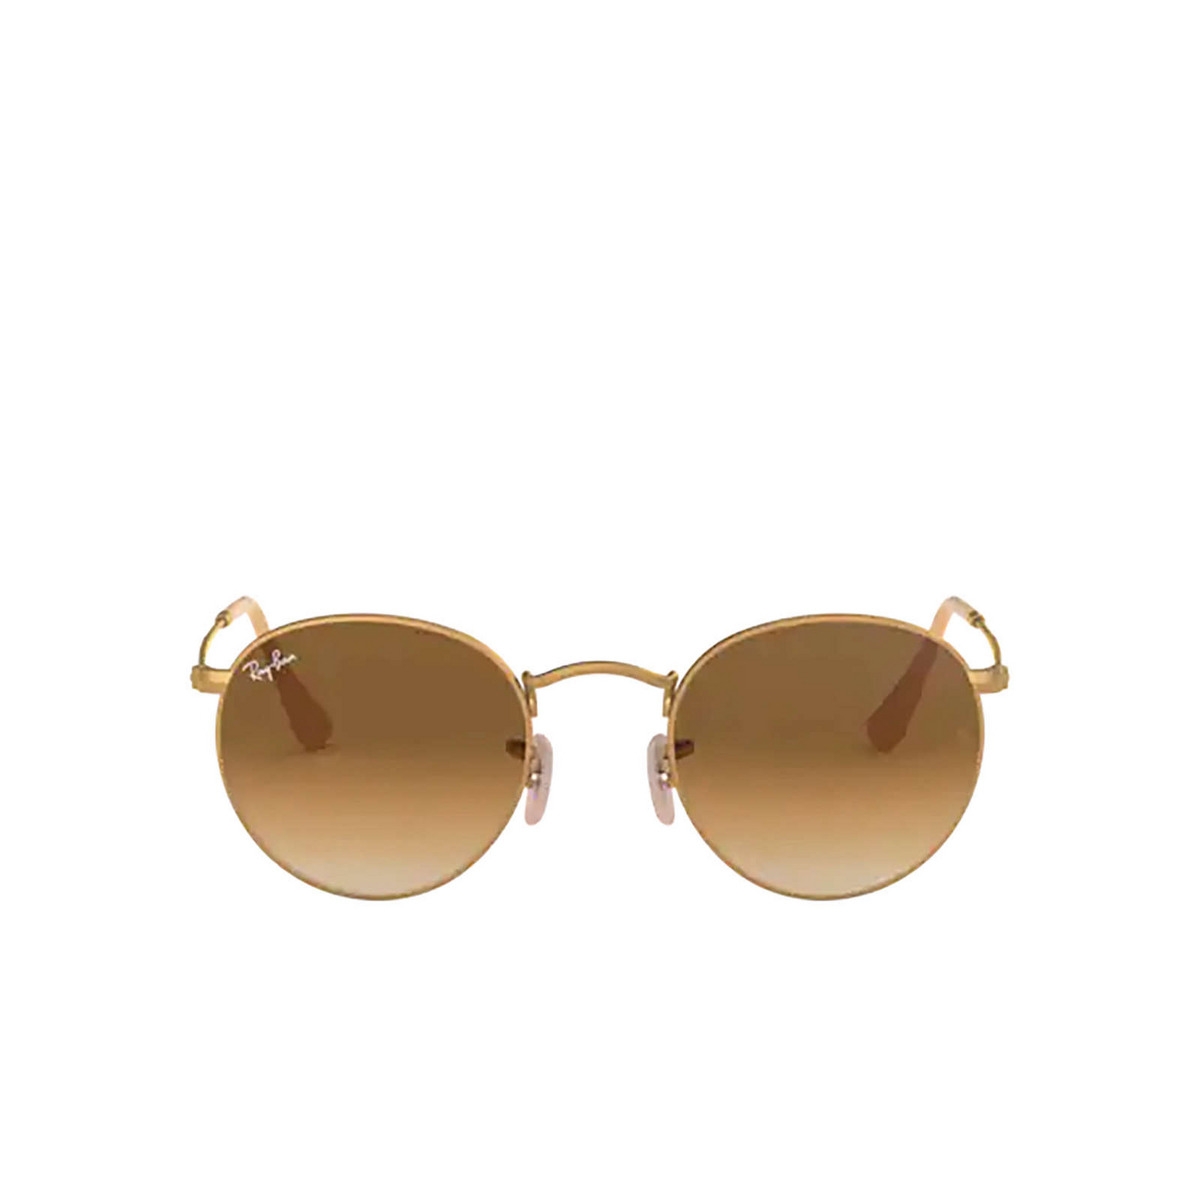 Ray-Ban® Round Sunglasses: Round Metal RB3447 color Matte Arista 112/51 - front view.